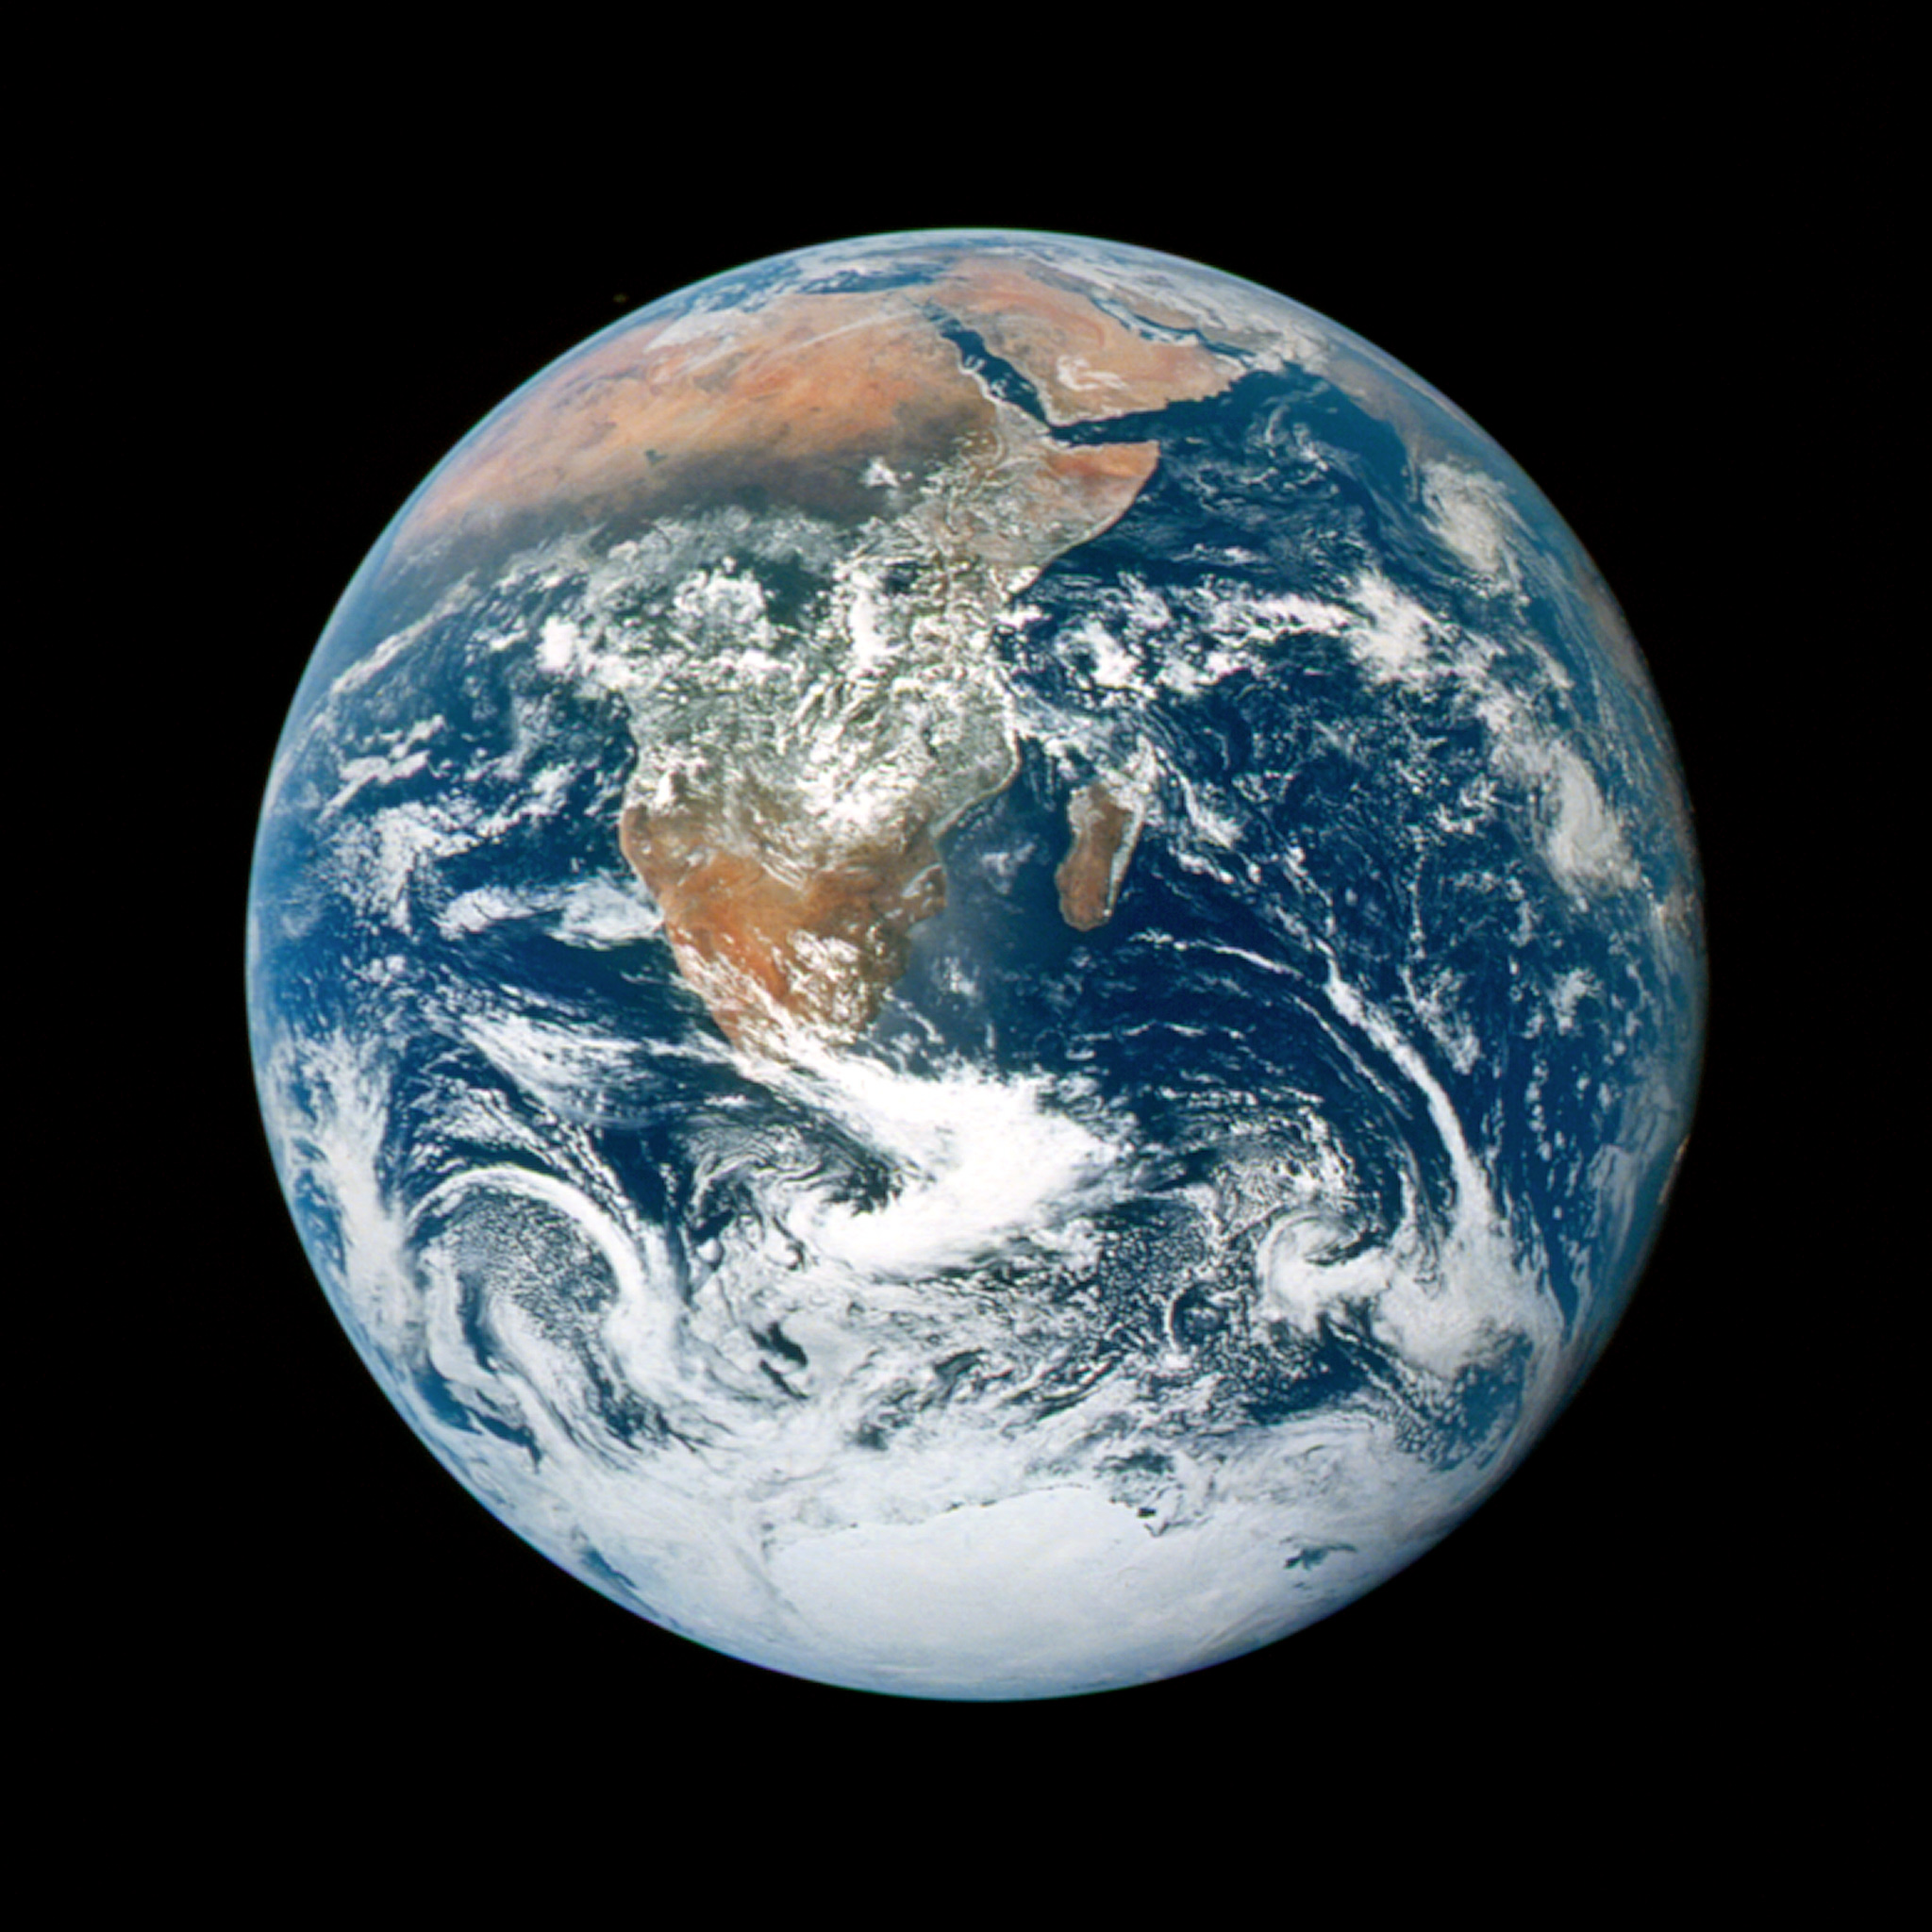 nasa - as17-148-22727 earth ipad wallpaper